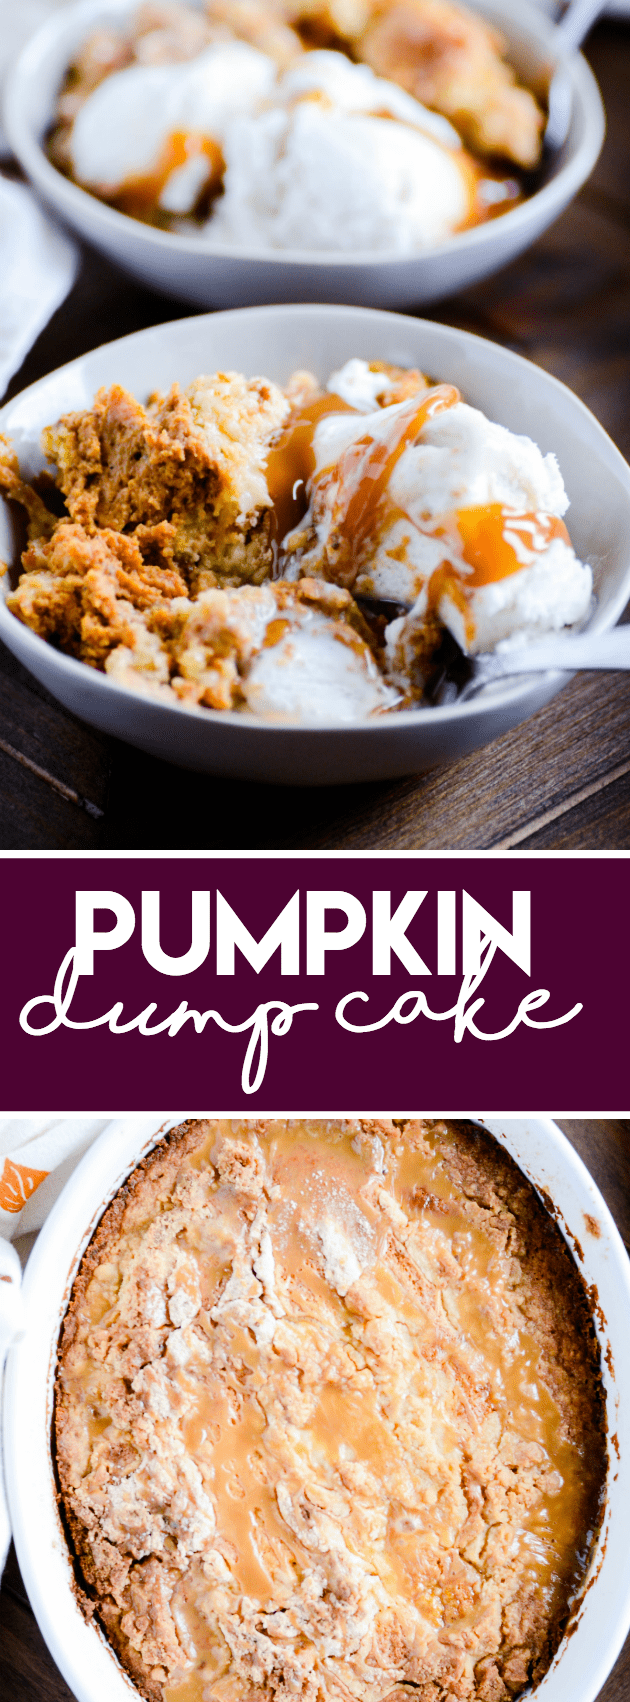 Pumpkin pie on the bottom with a sweet crunchy layer on top. True to it's name, the recipe is easy as dumping the ingredients in a bowl and stirring!